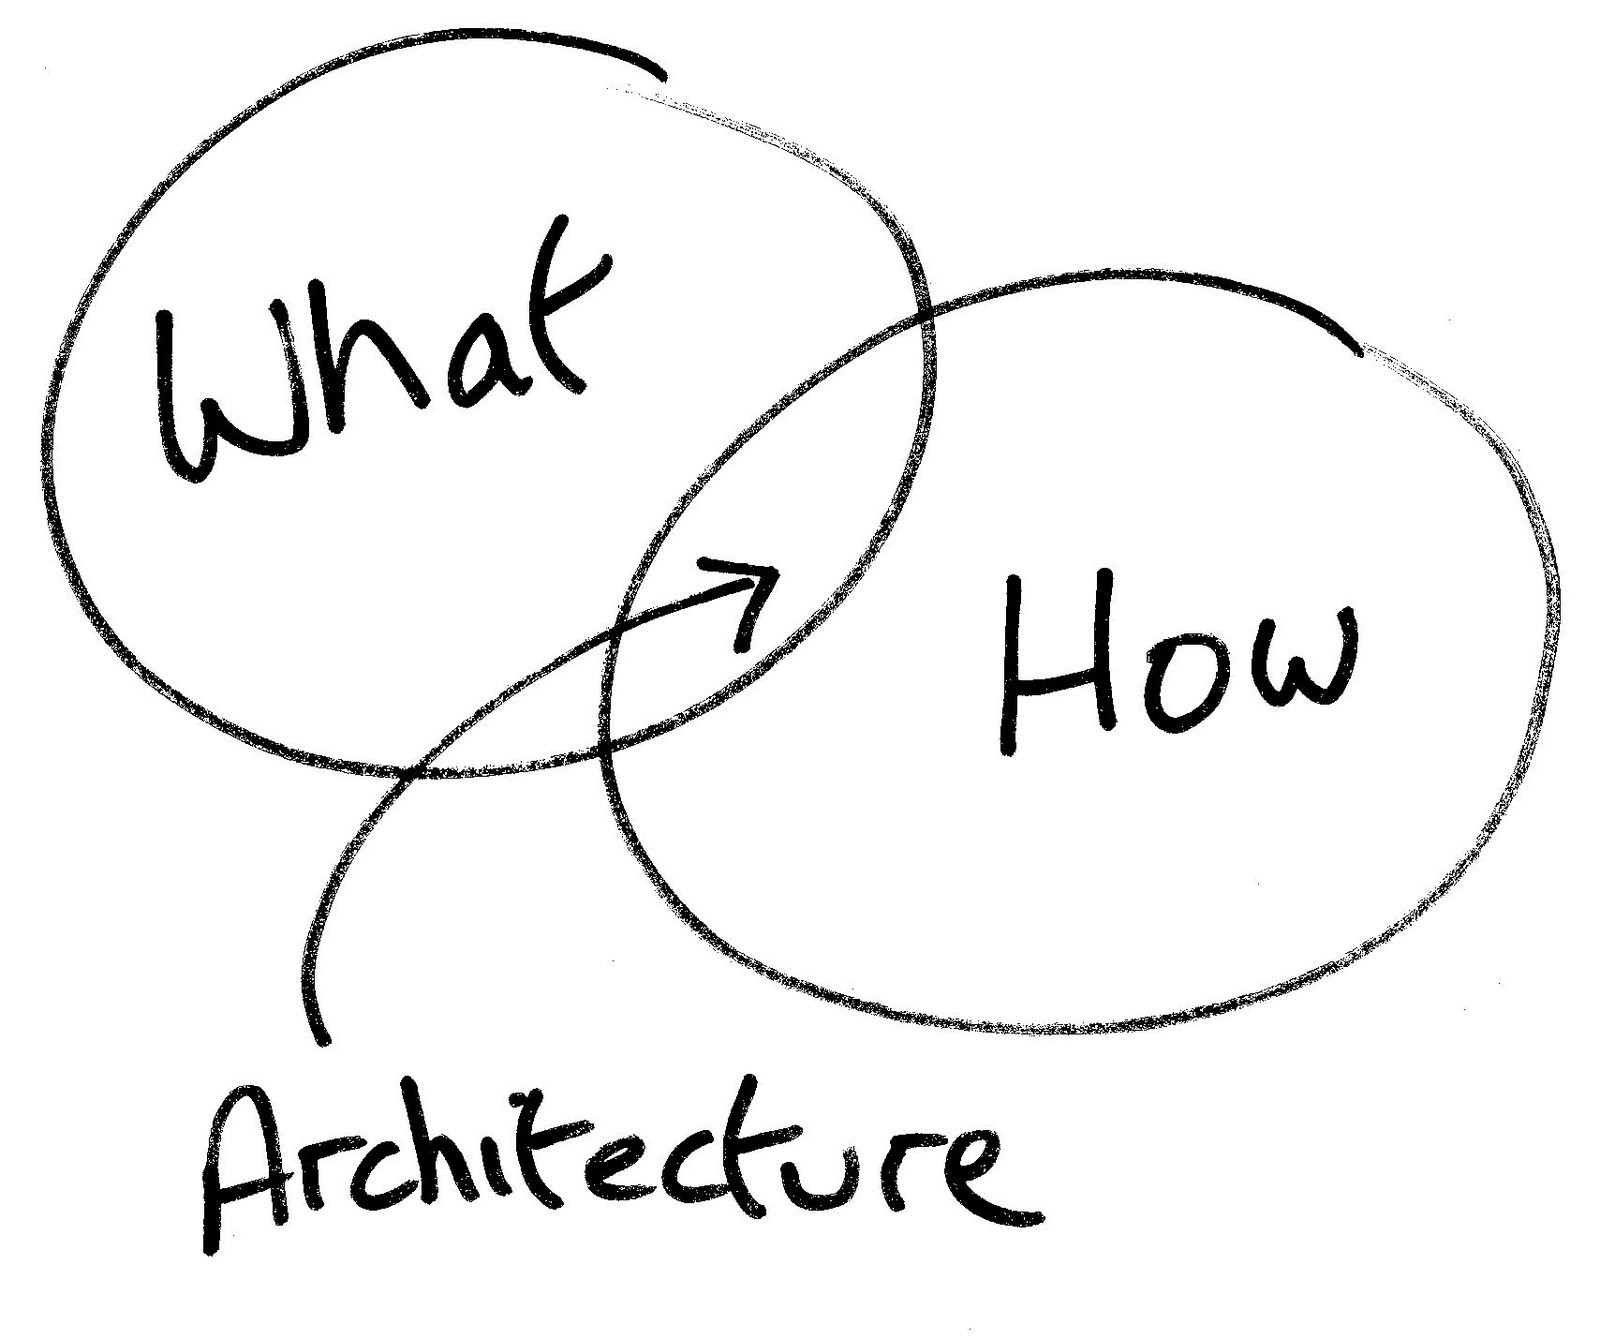 7 Enterprise Architecture Principles To Keep In Mind While Building Your Next Product